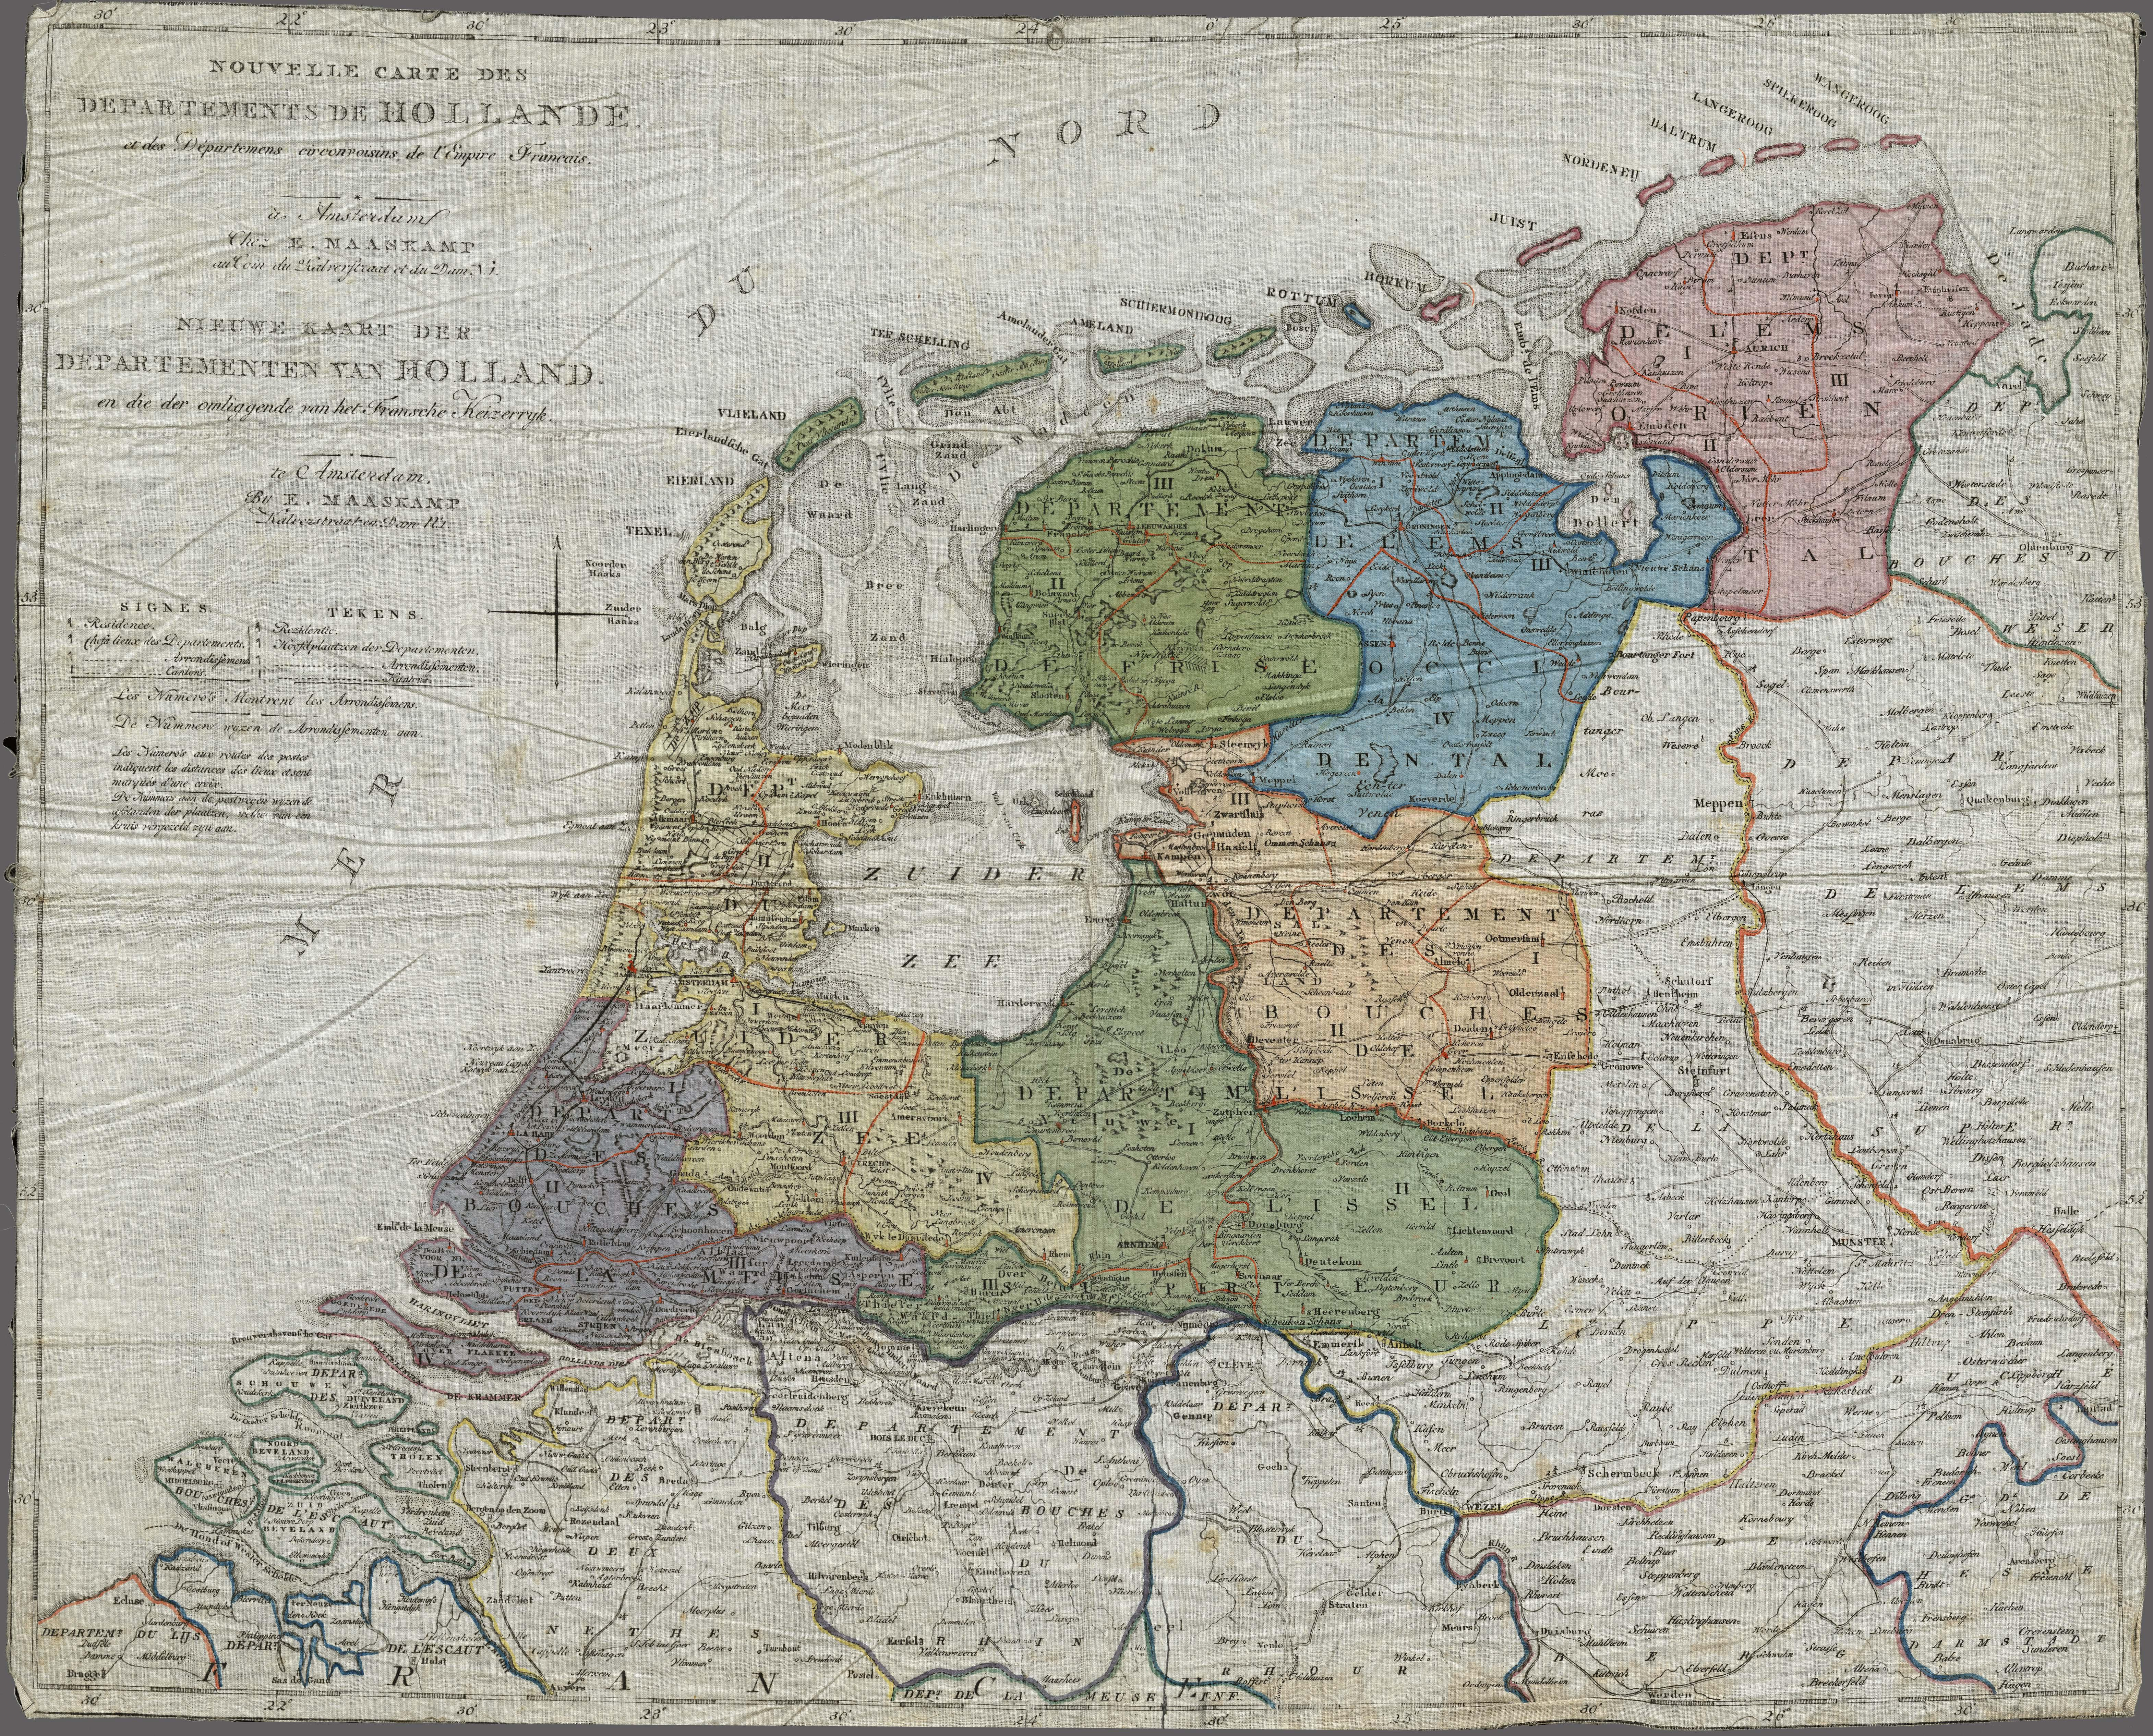 Lot 2330 - Netherlands and former colonies Netherlands -  Corinphila Veilingen Auction 250-253 - Day 3 - Netherlands and former colonies - Single lots & Picture postcards